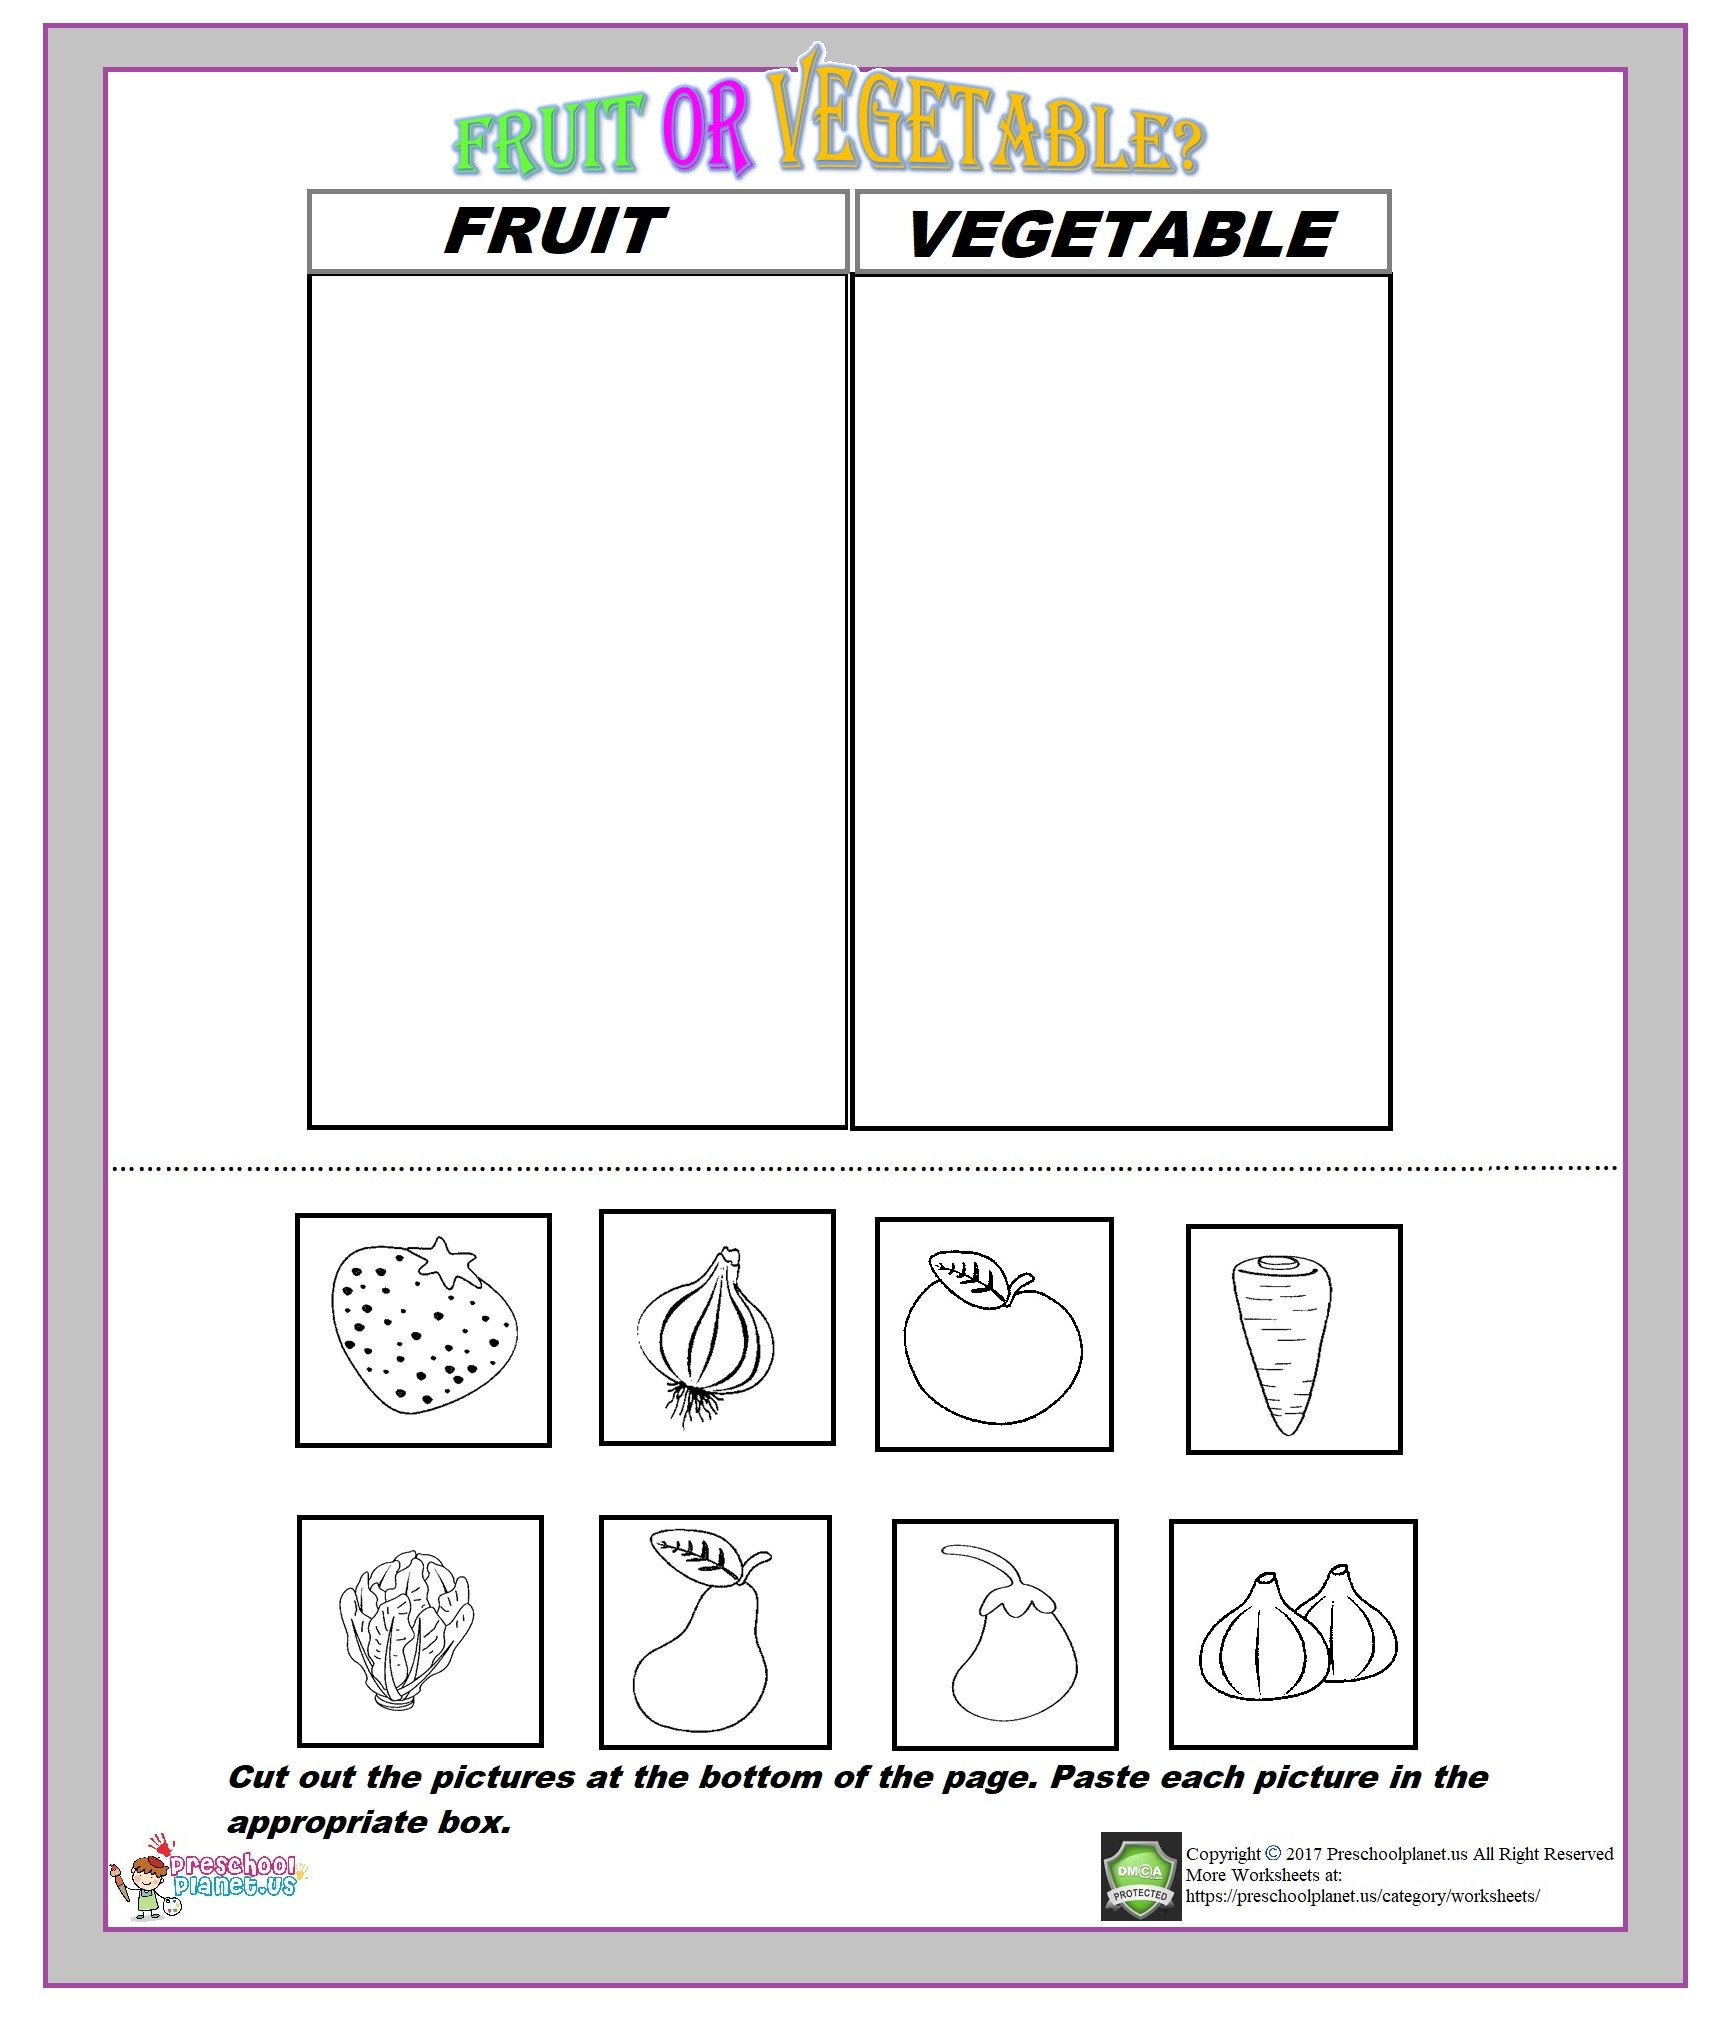 Fruit or Ve able Worksheet – Preschoolplanet